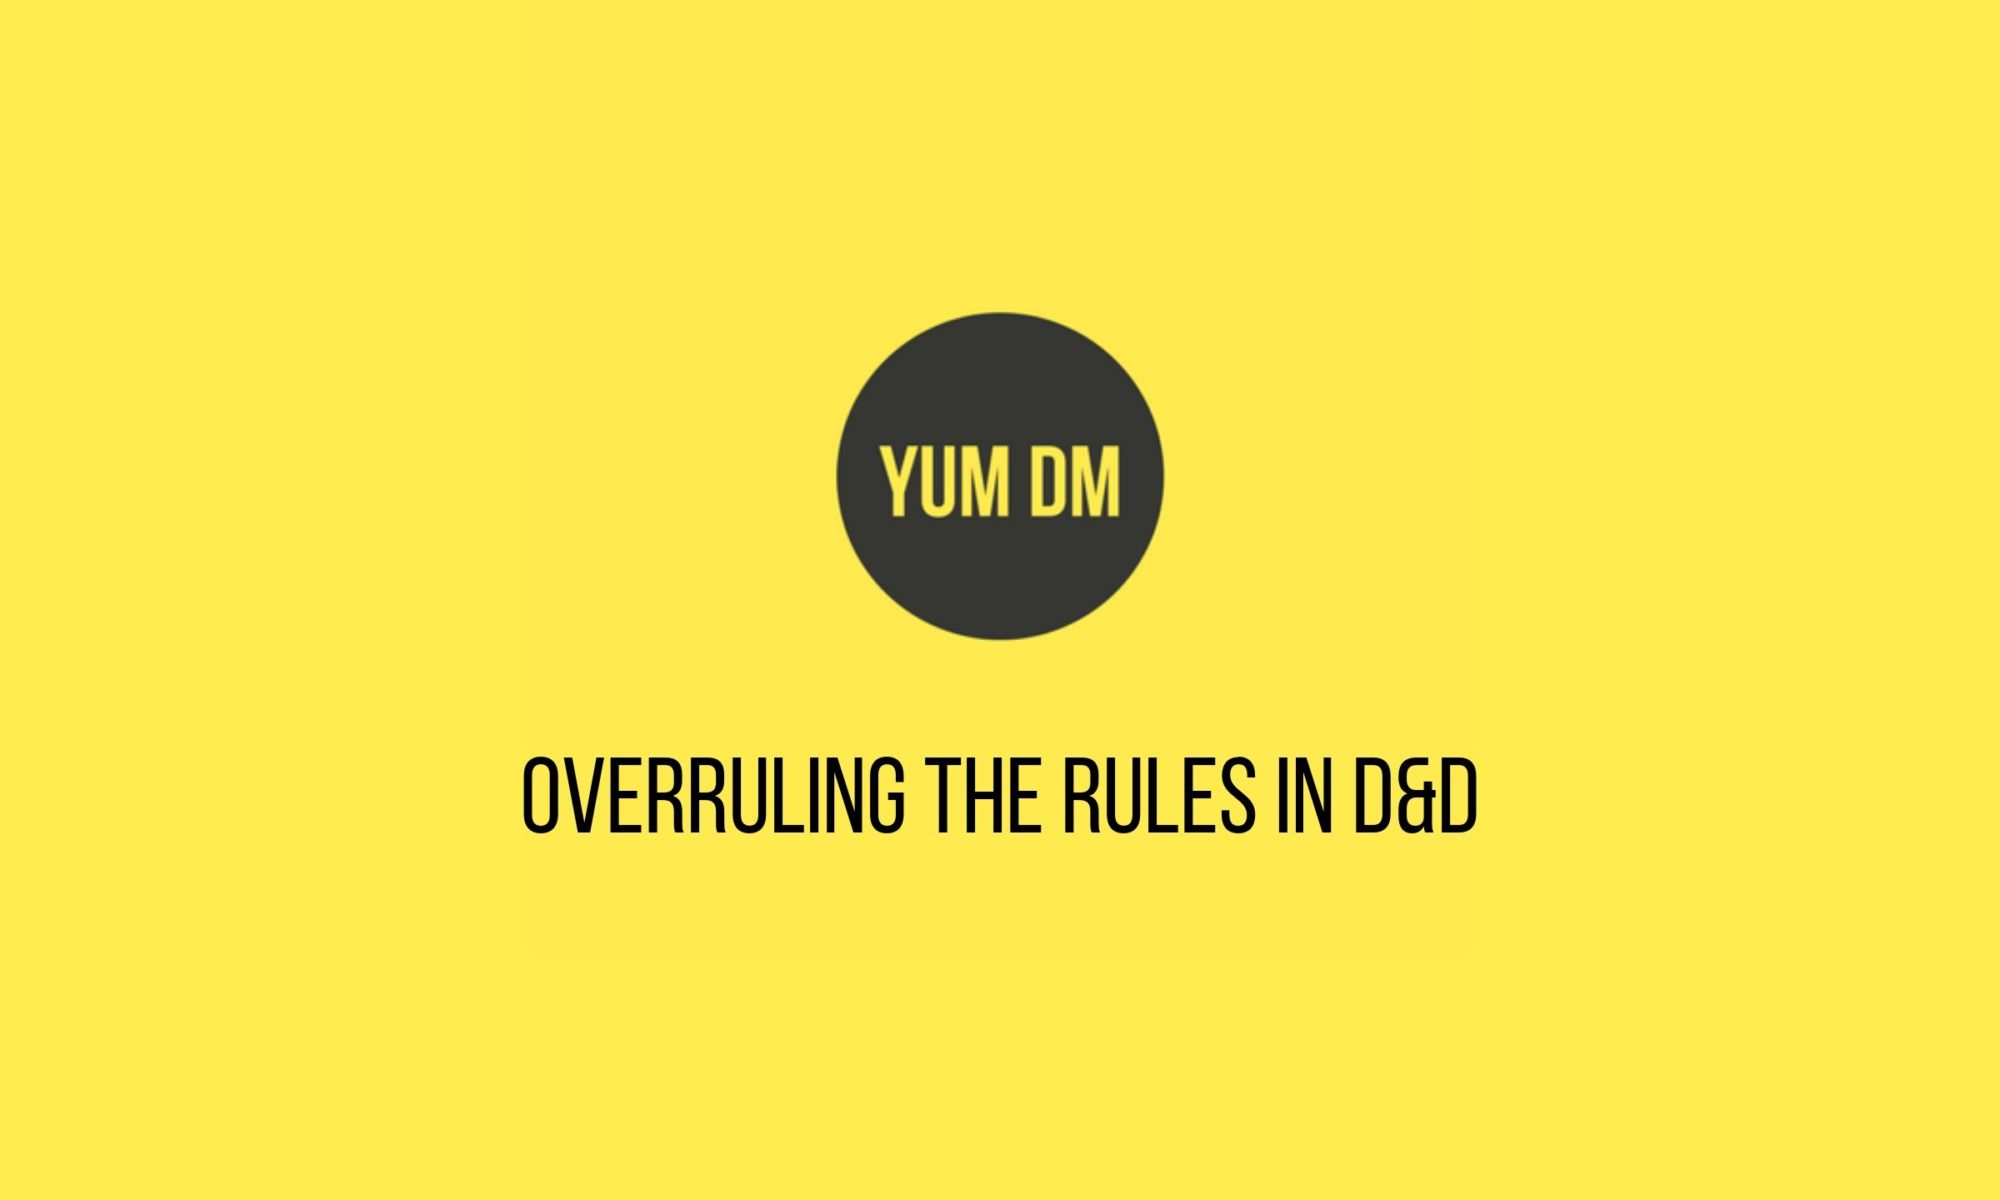 Overruling The Rules In D&D